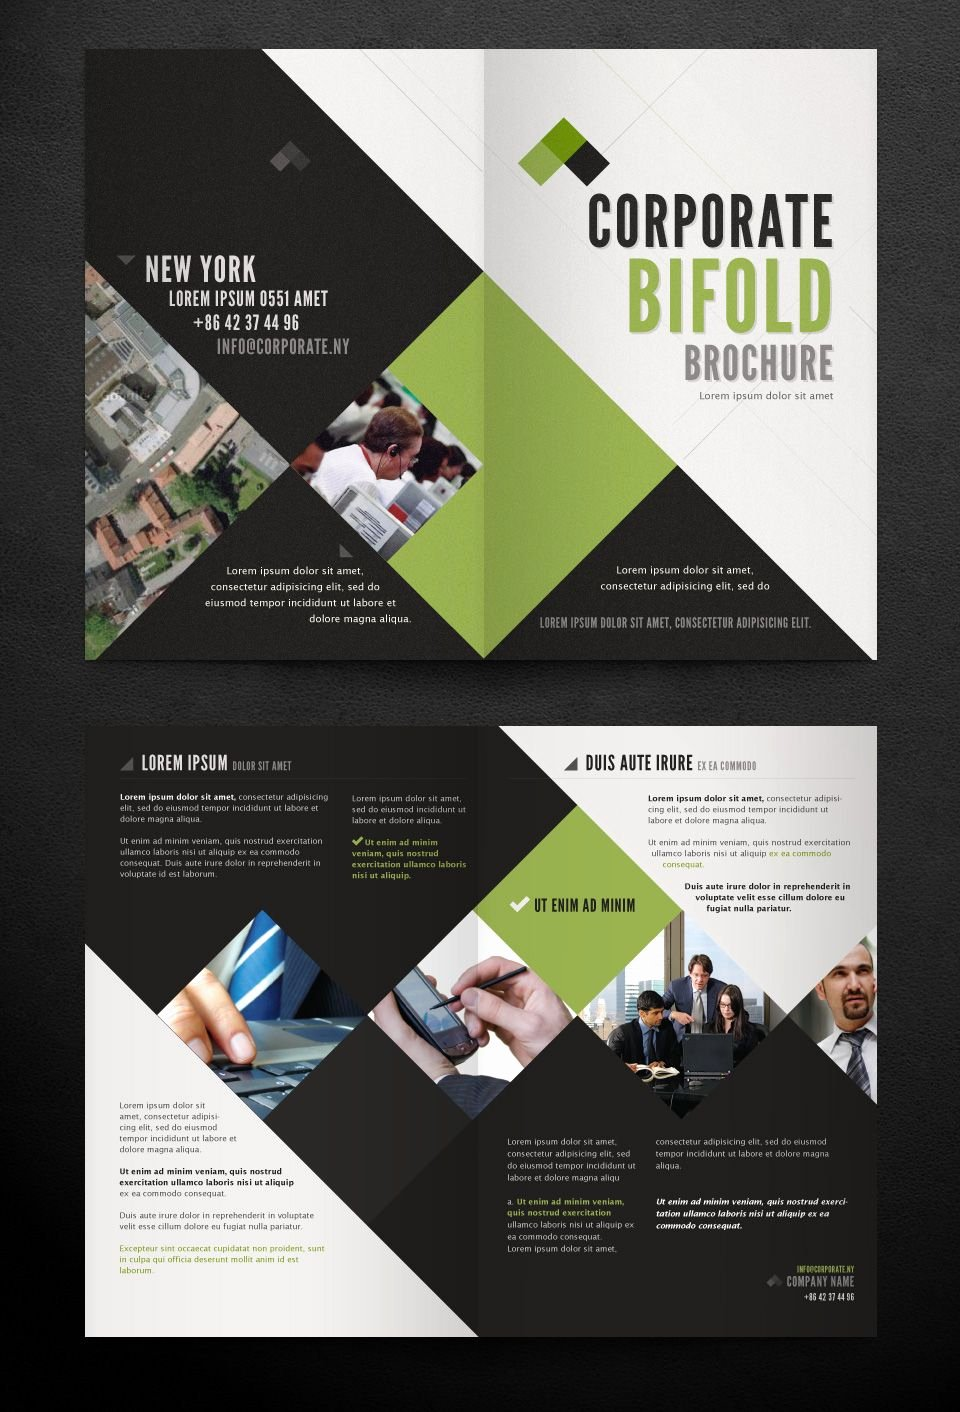 Bi Fold Brochure Template New Corporate Bi Fold Brochure Template